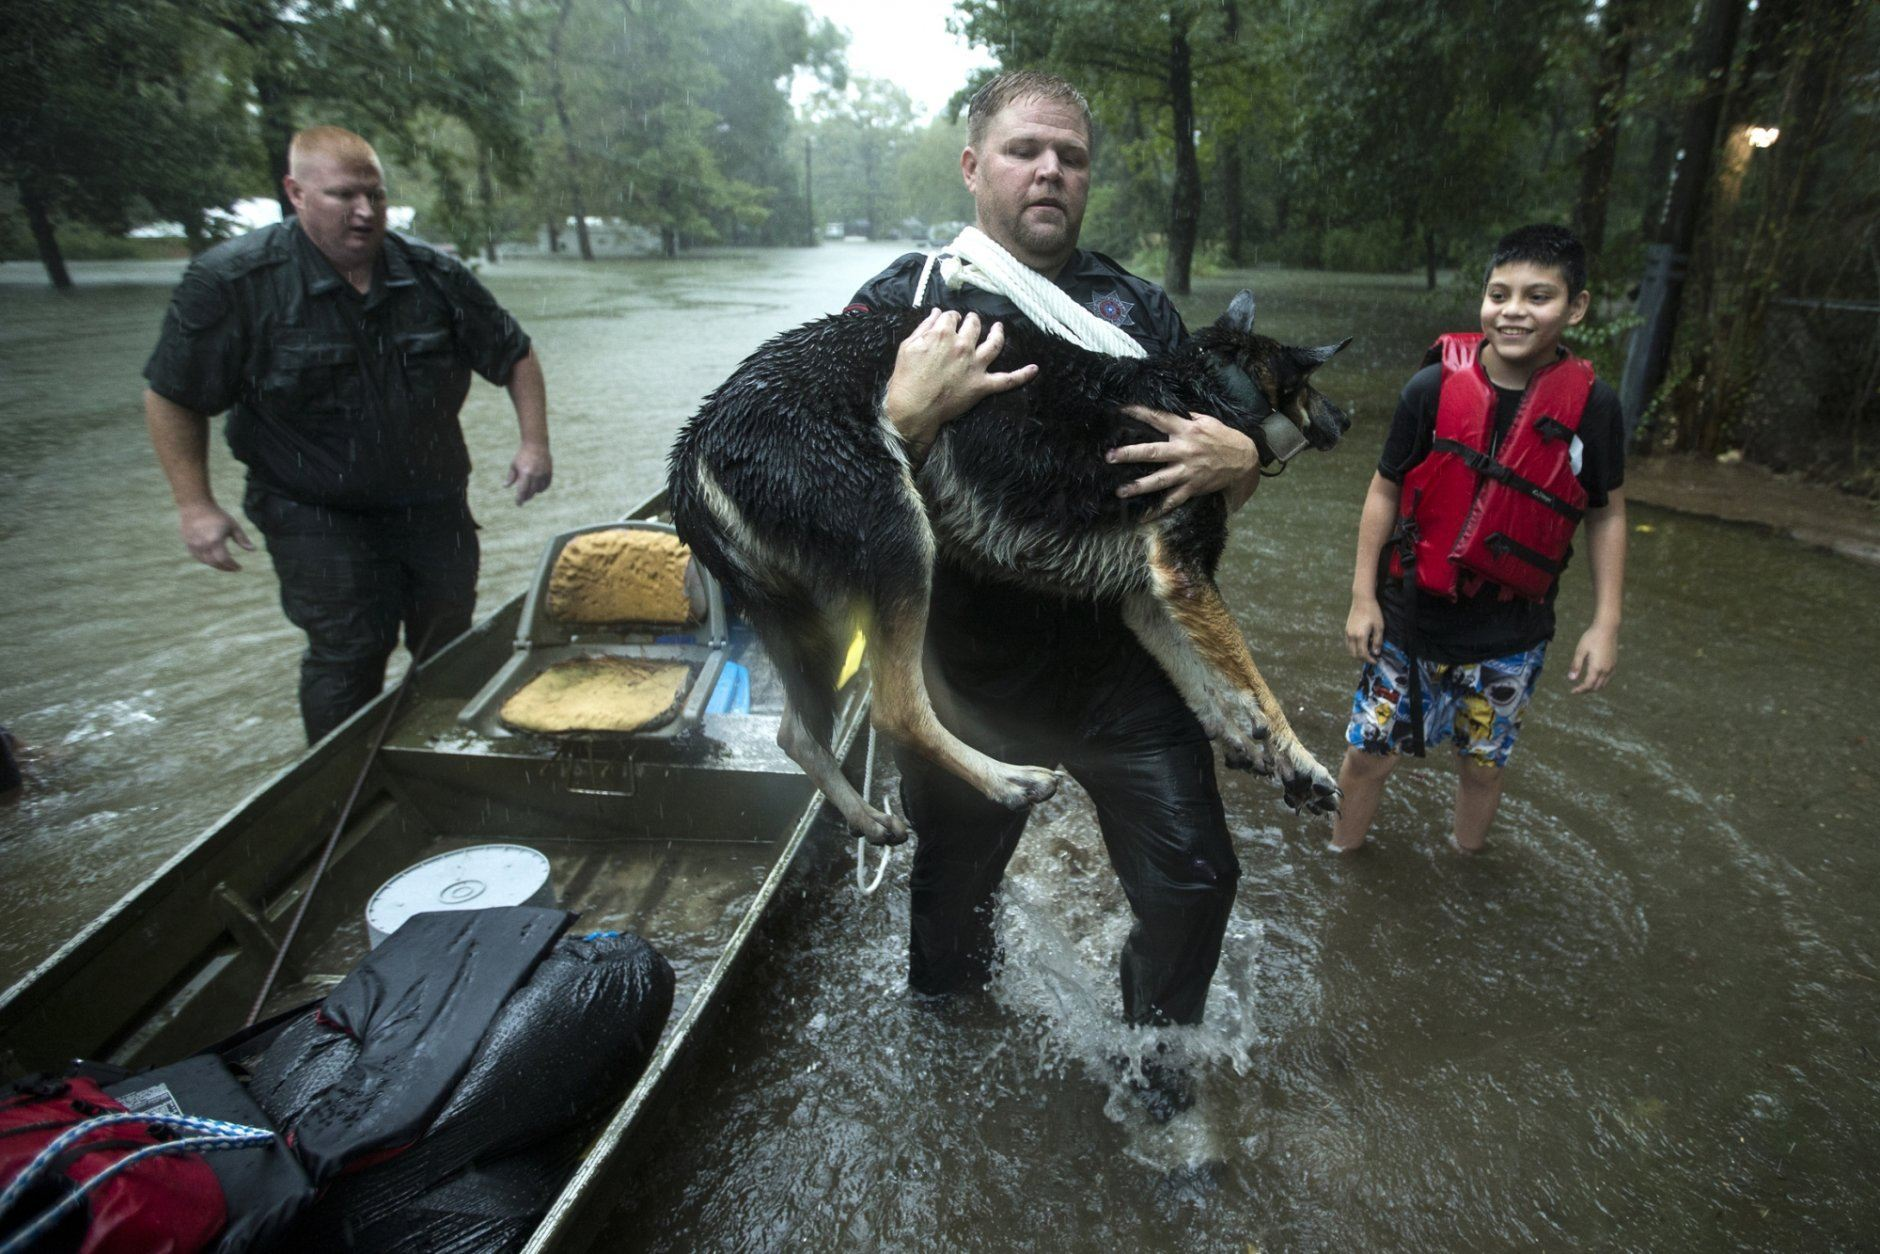 Splendora Police officer Mike Jones carries Ramiro Lopez Jr.'s dog, Panthea, from a boat after the officers rescued the family from their flooded neighborhood as rains from Tropical Depression Imelda inundated the area, Thursday, Sept. 19, 2019, in Splendora, Texas. (Brett Coomer/Houston Chronicle via AP)